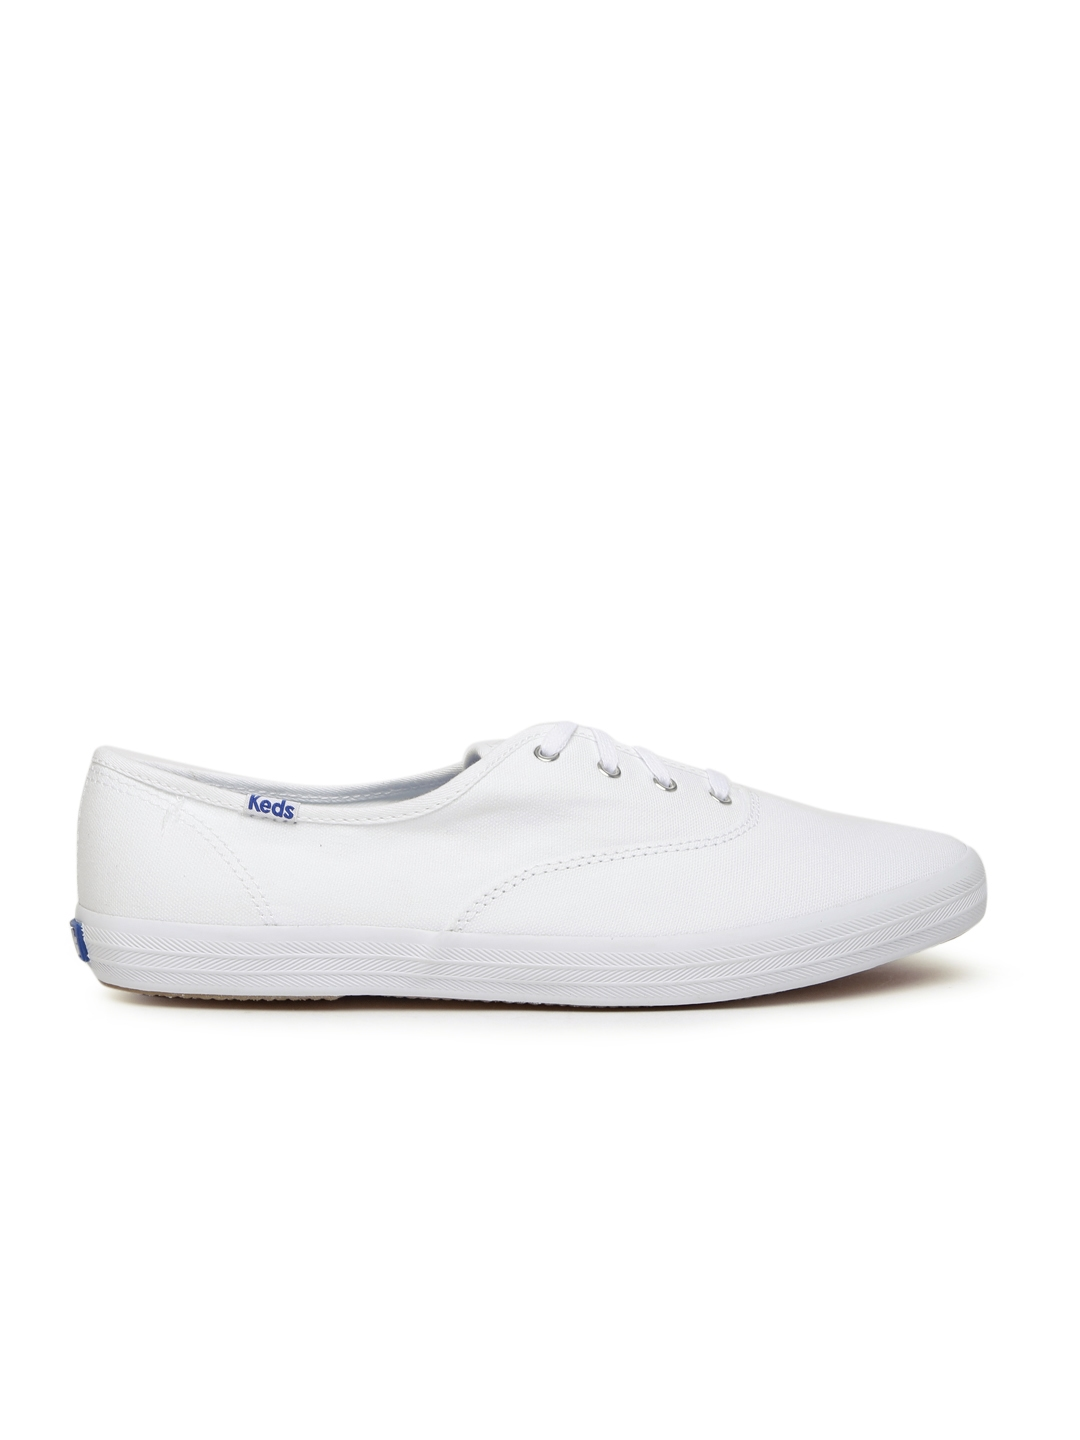 10bee774320de Buy Keds Women White Champion Solid Sneakers - Casual Shoes for ...